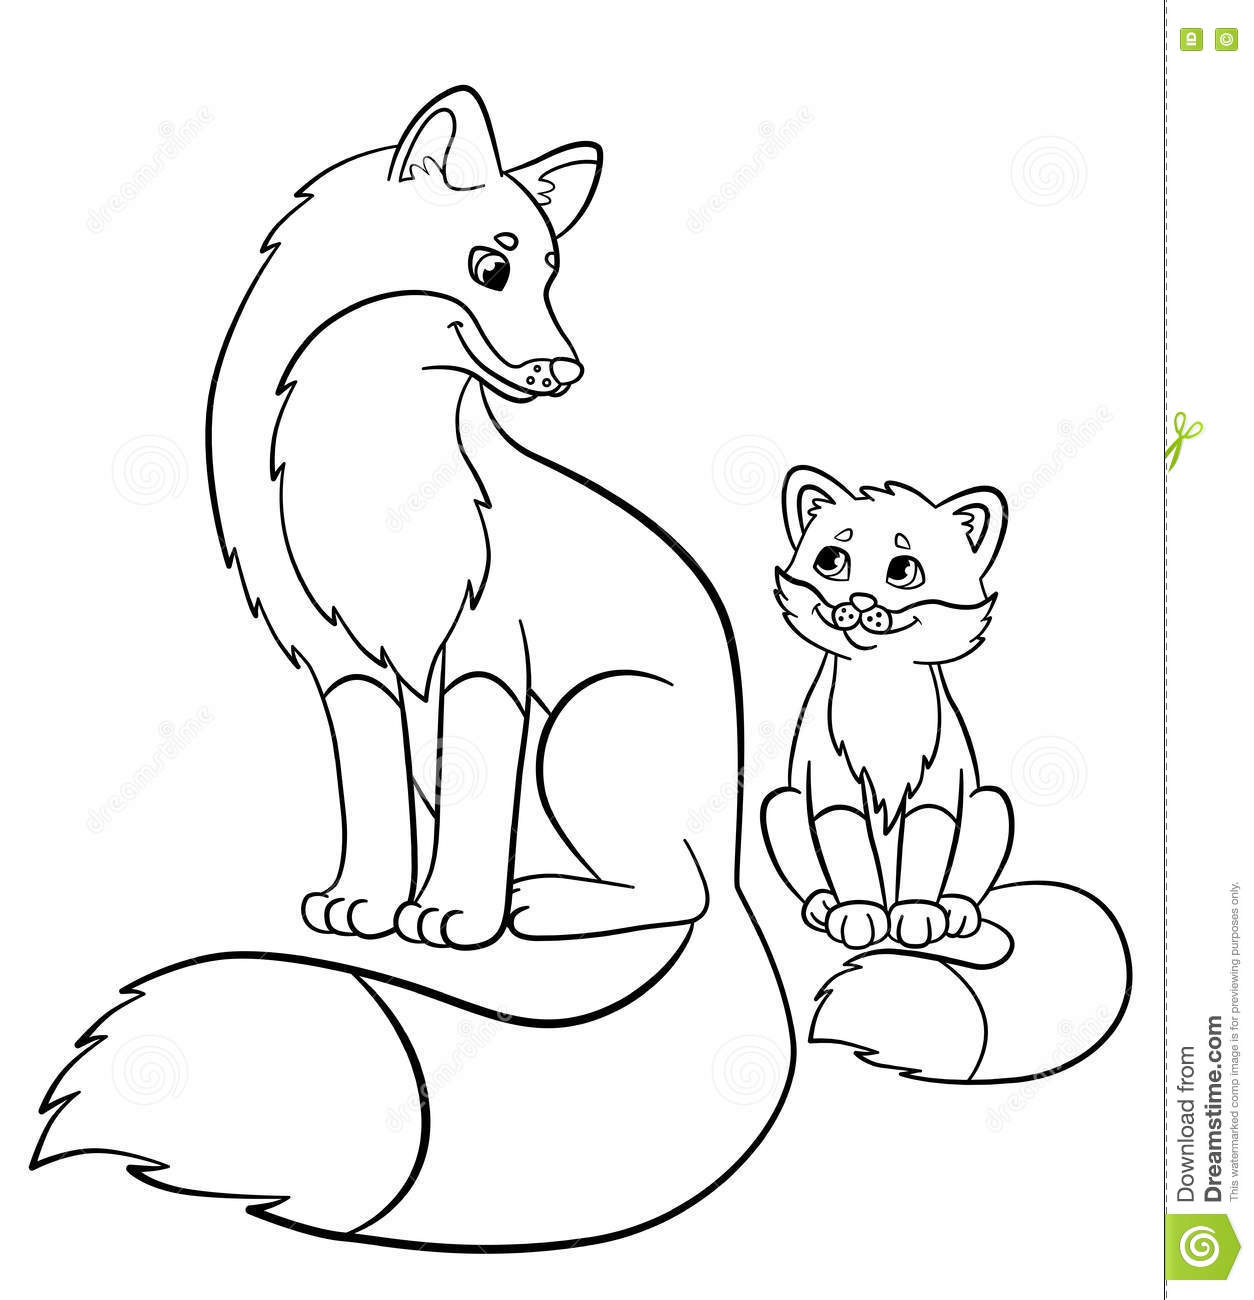 Animals And Their Babies Coloring Pages At Getdrawings